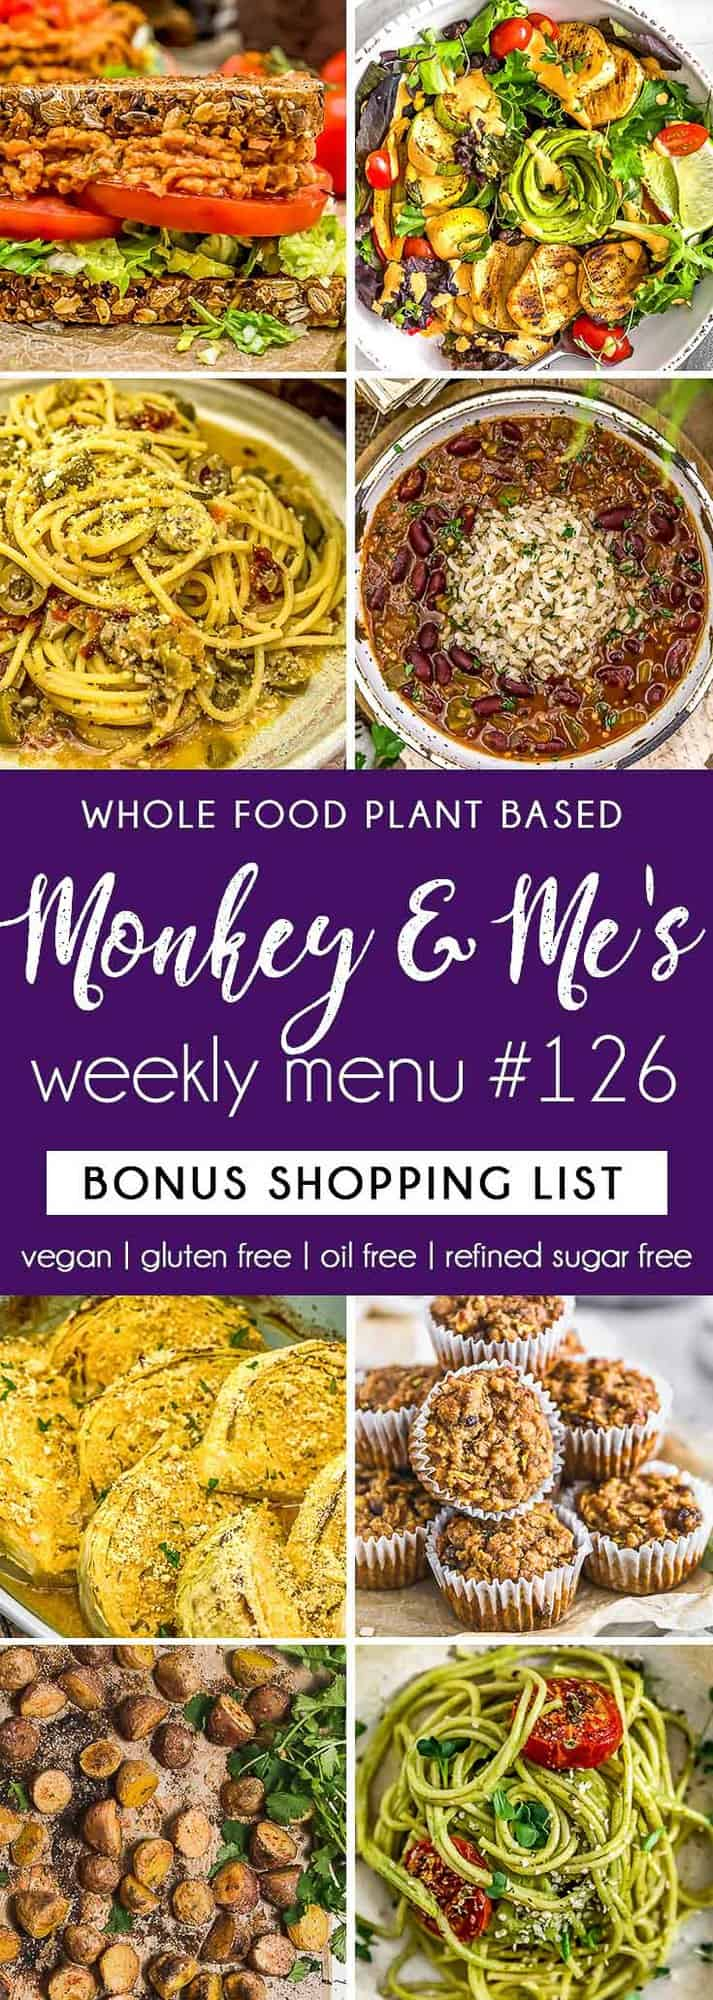 Monkey and Me's Menu 126 featuring 8 recipes